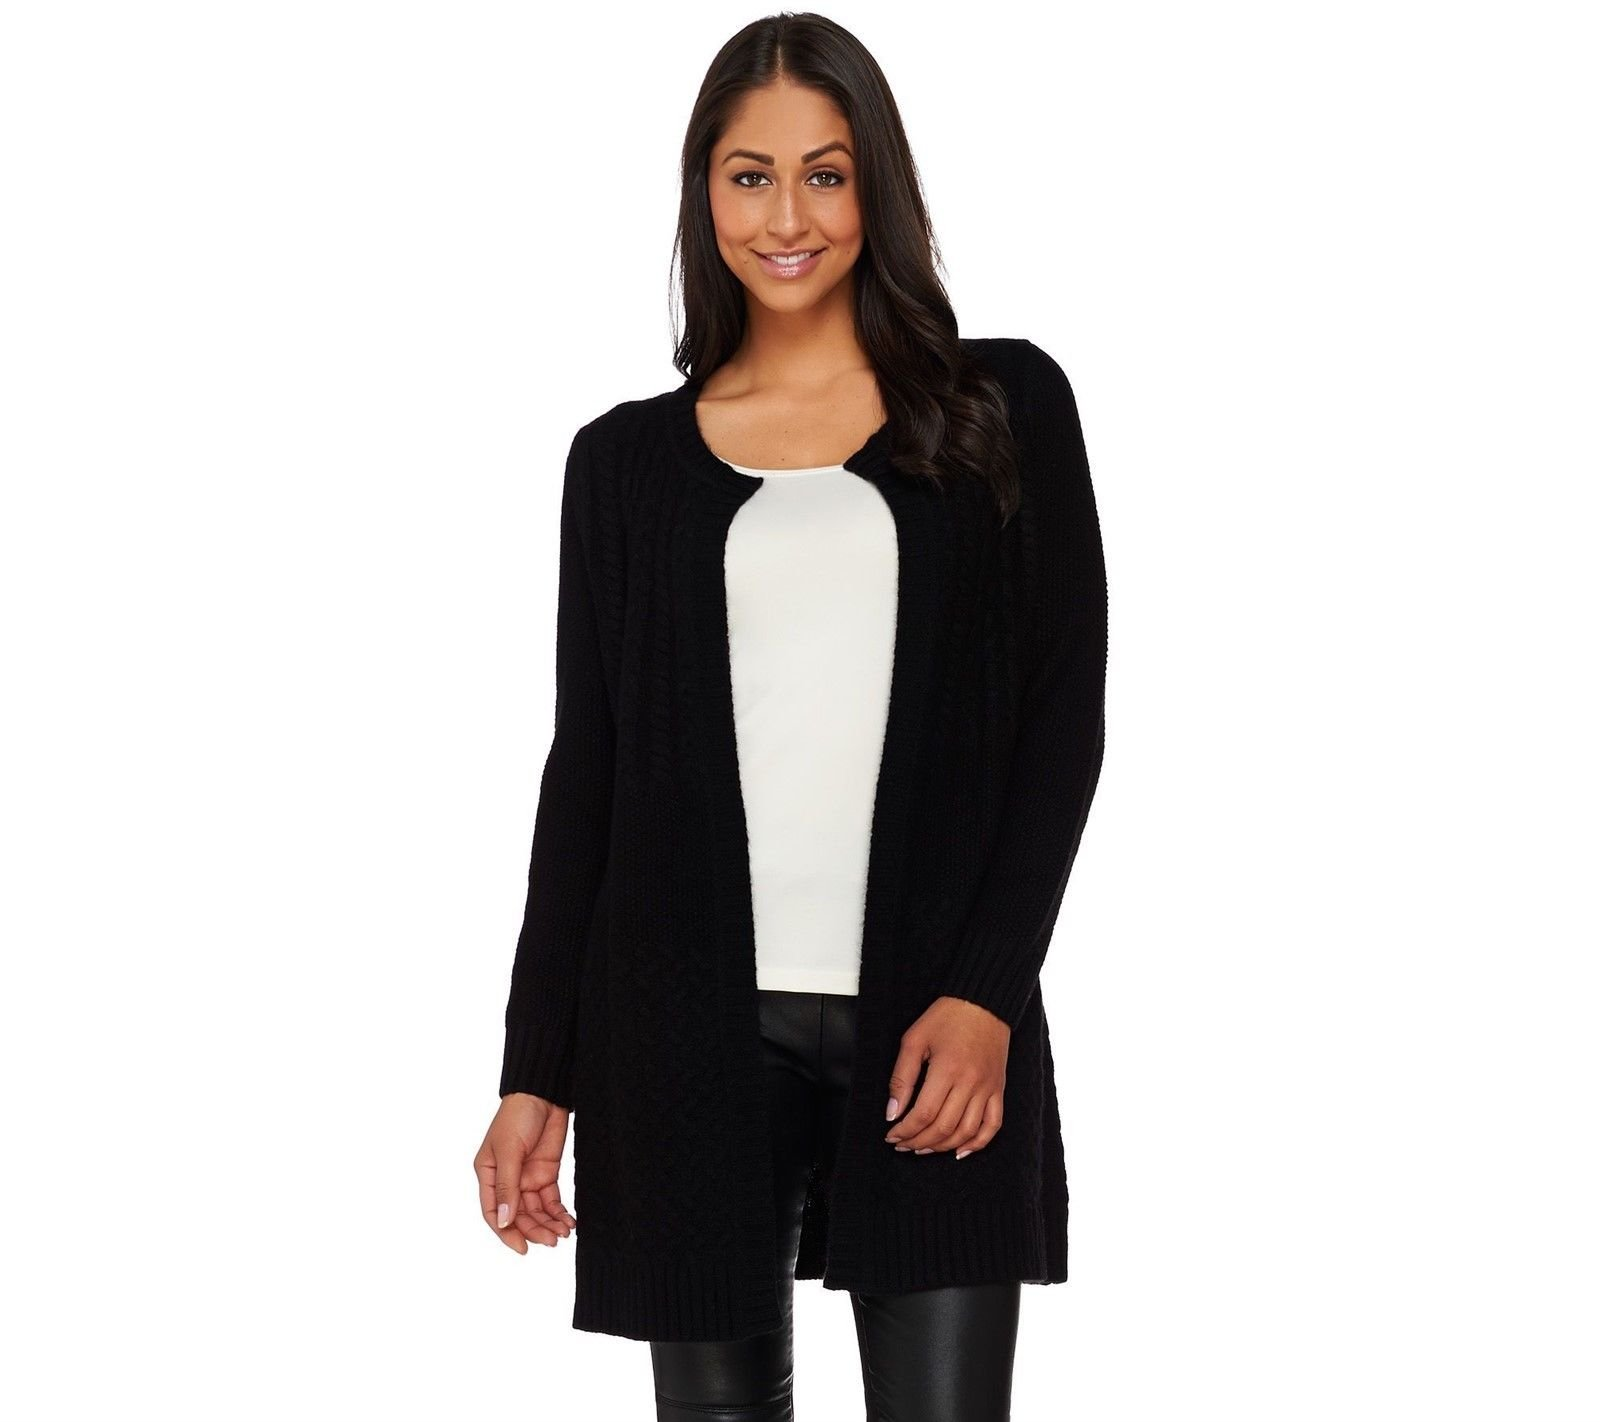 Isaac Mizrahi 2-Ply Cashmere Special Edition Sweater Coat Black S New A267929